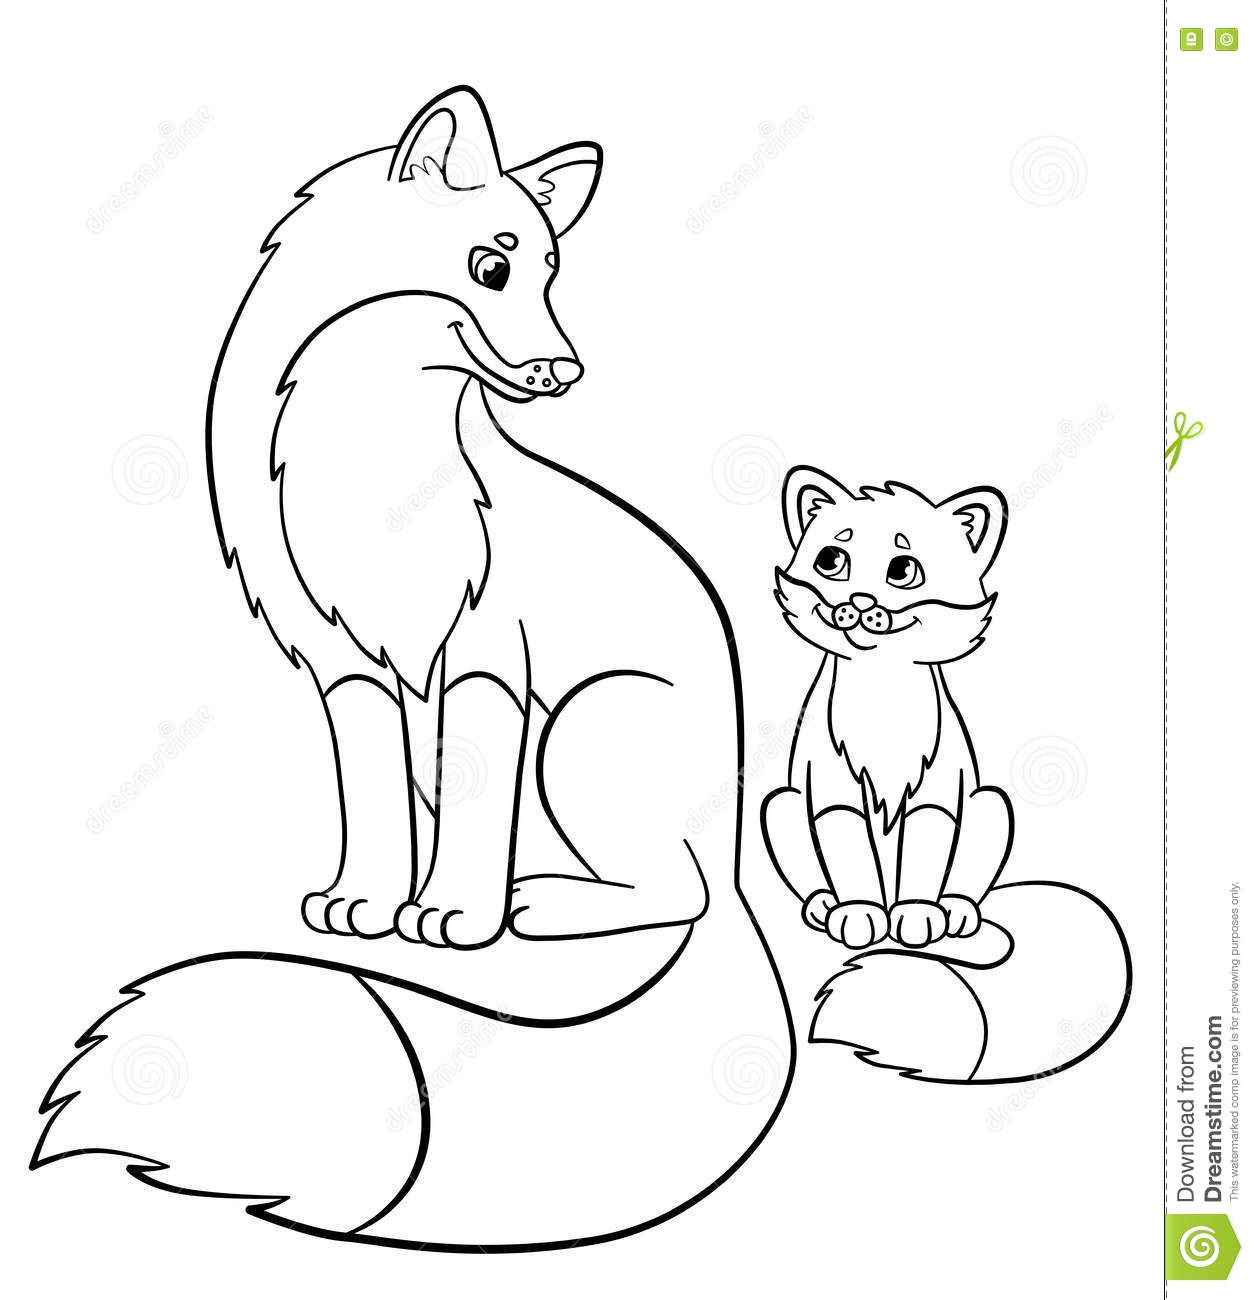 Baby Picture Coloring Pages At Getdrawings Com Free For Personal